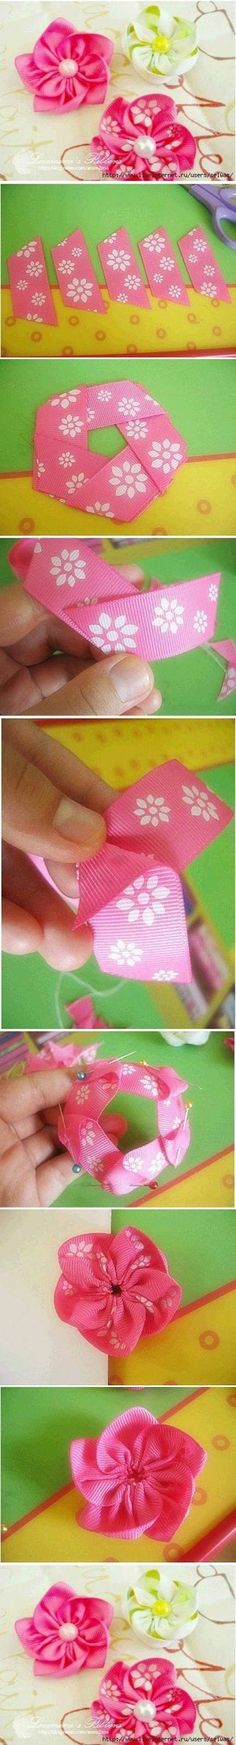 DIY Tape Flowers flowers diy tape easy crafts diy ideas diy crafts do it yourself crafty easy diy diy craft diy tips diy images do it yourself images diy photos diy pics easy diy craft ideas diy tutorial diy tutorials diy tutorial idea diy tutorial ideas diy crafty